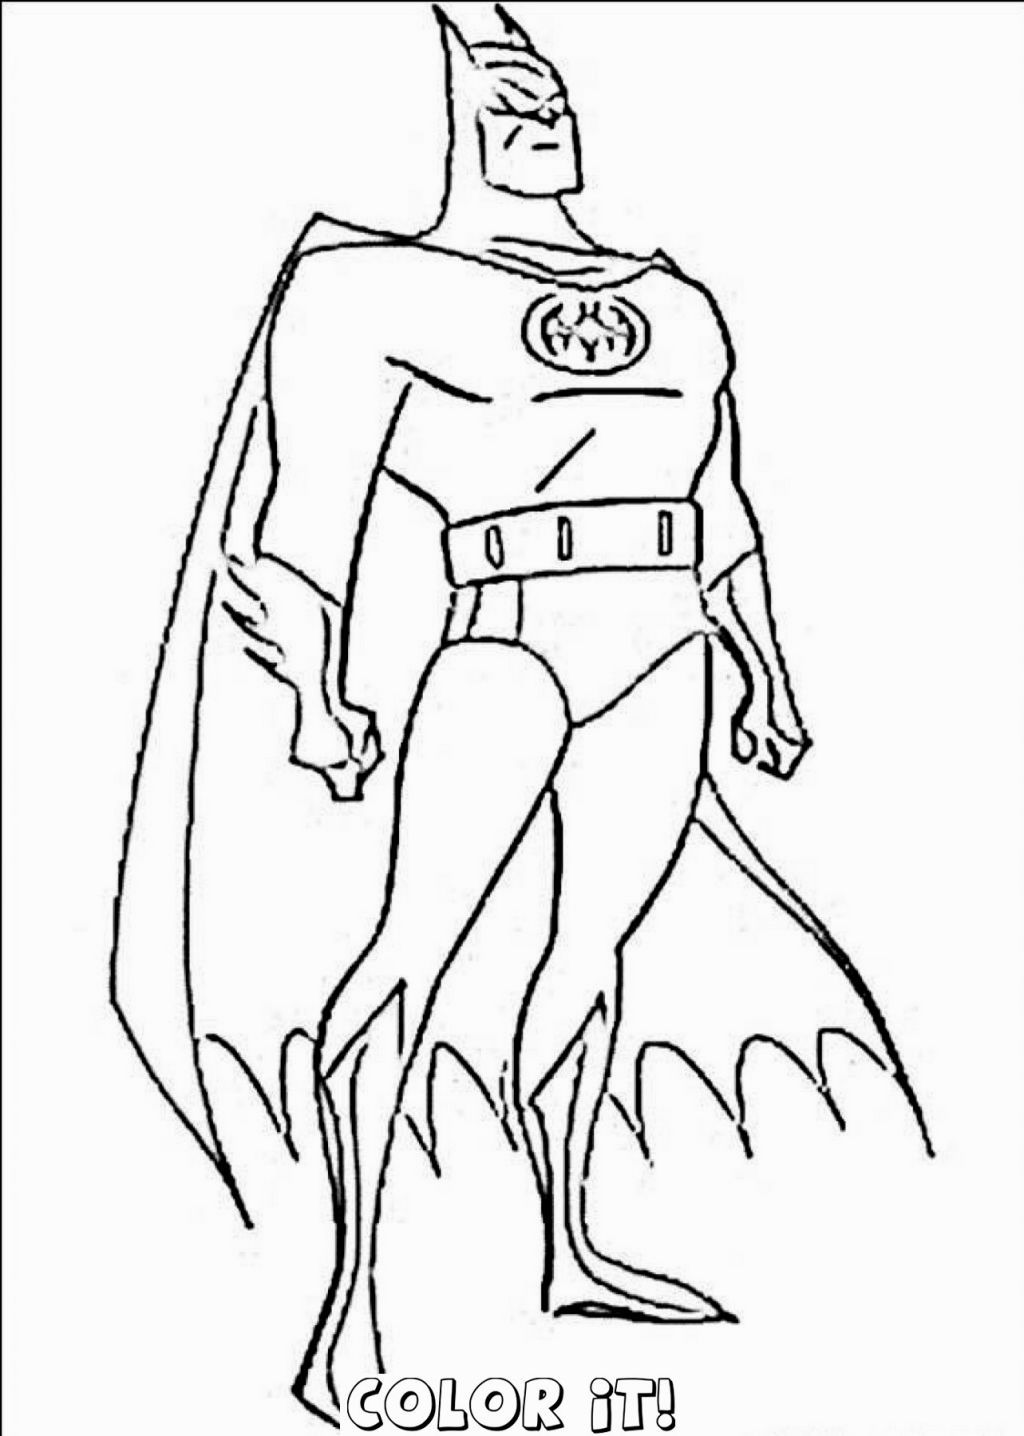 Batman colouring in online - Batman Coloring Pages Online